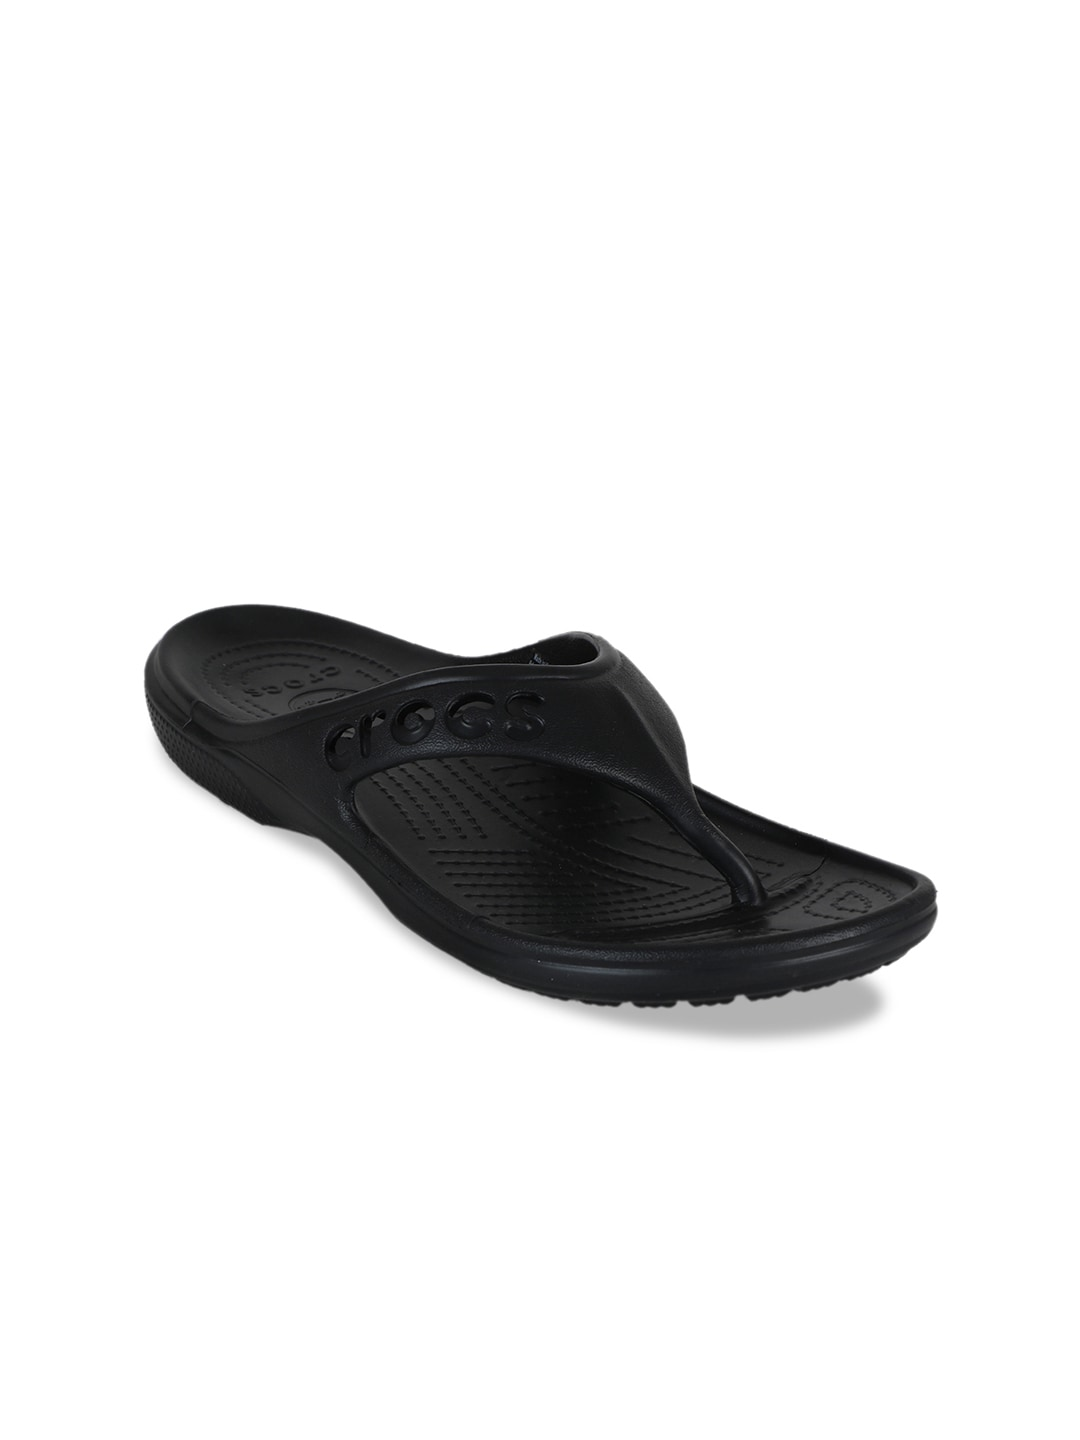 Girls Crocs Sandals Size 7 To Win A High Admiration Kids' Clothing, Shoes & Accs